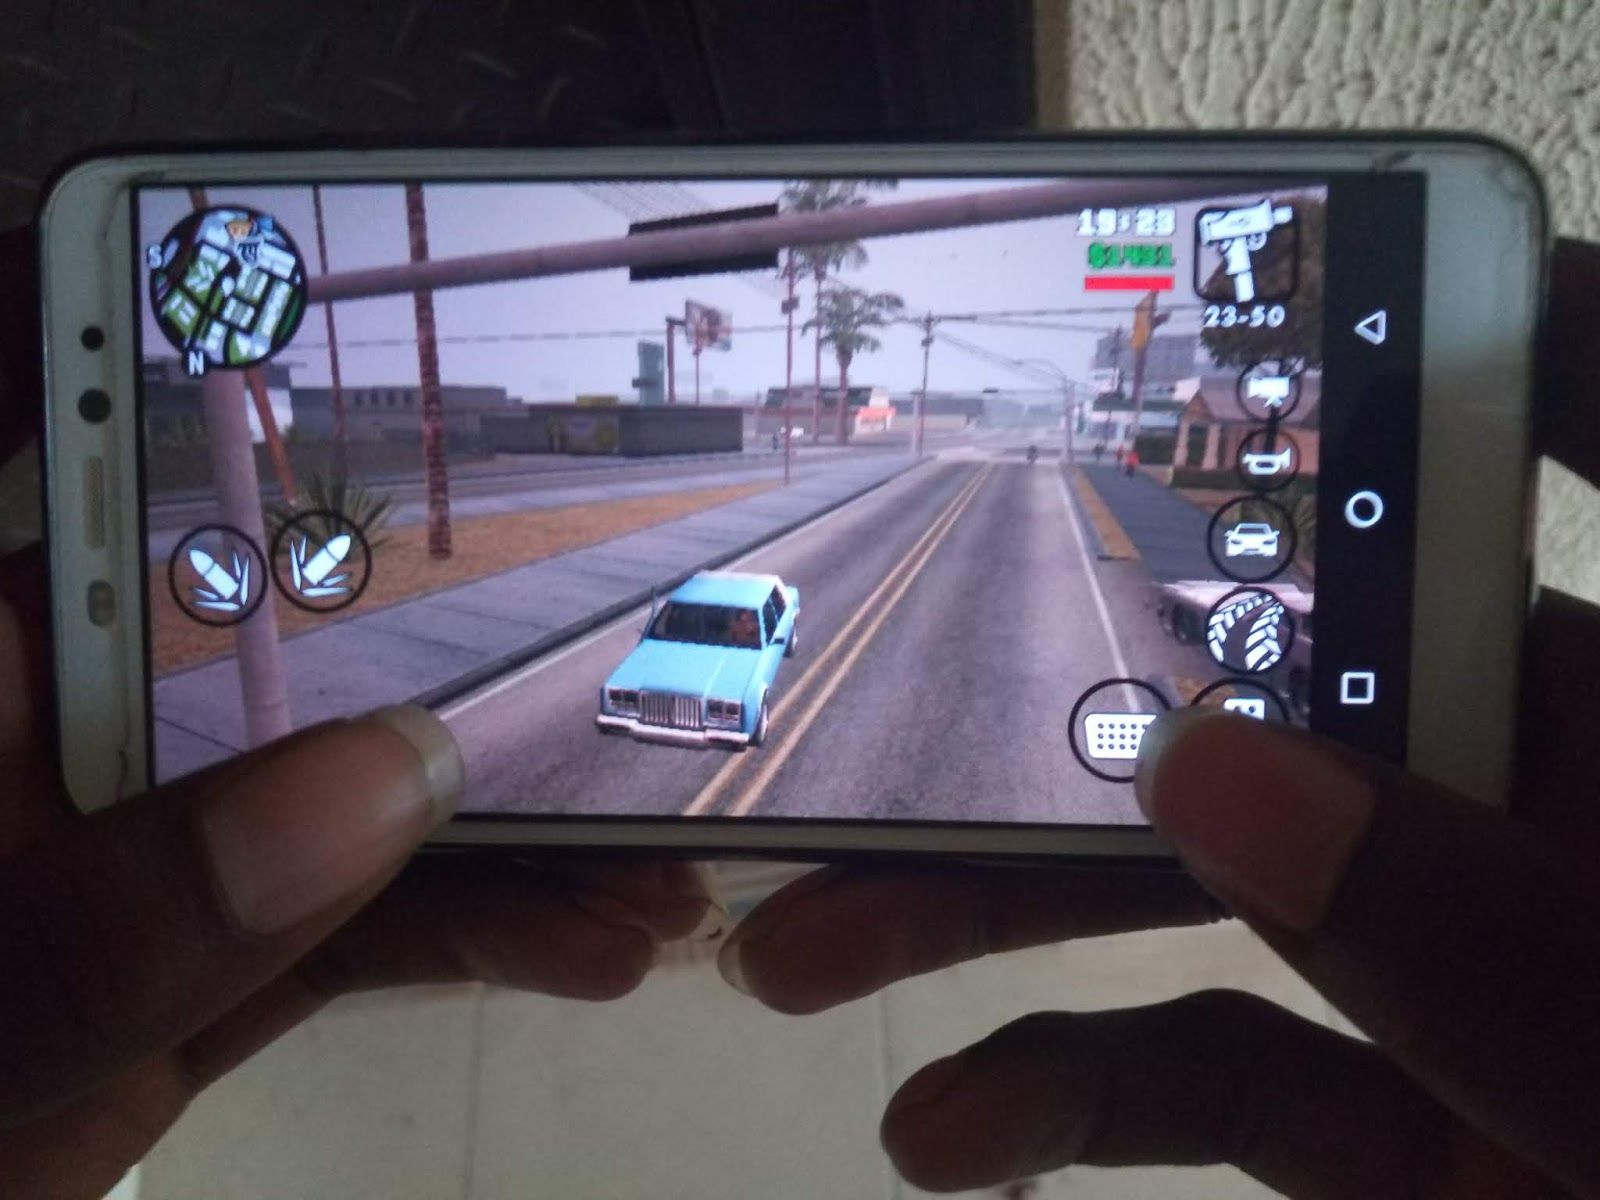 Android 8 Oreo 9 Pie Working Apk Data Of Grand Theft Auto San